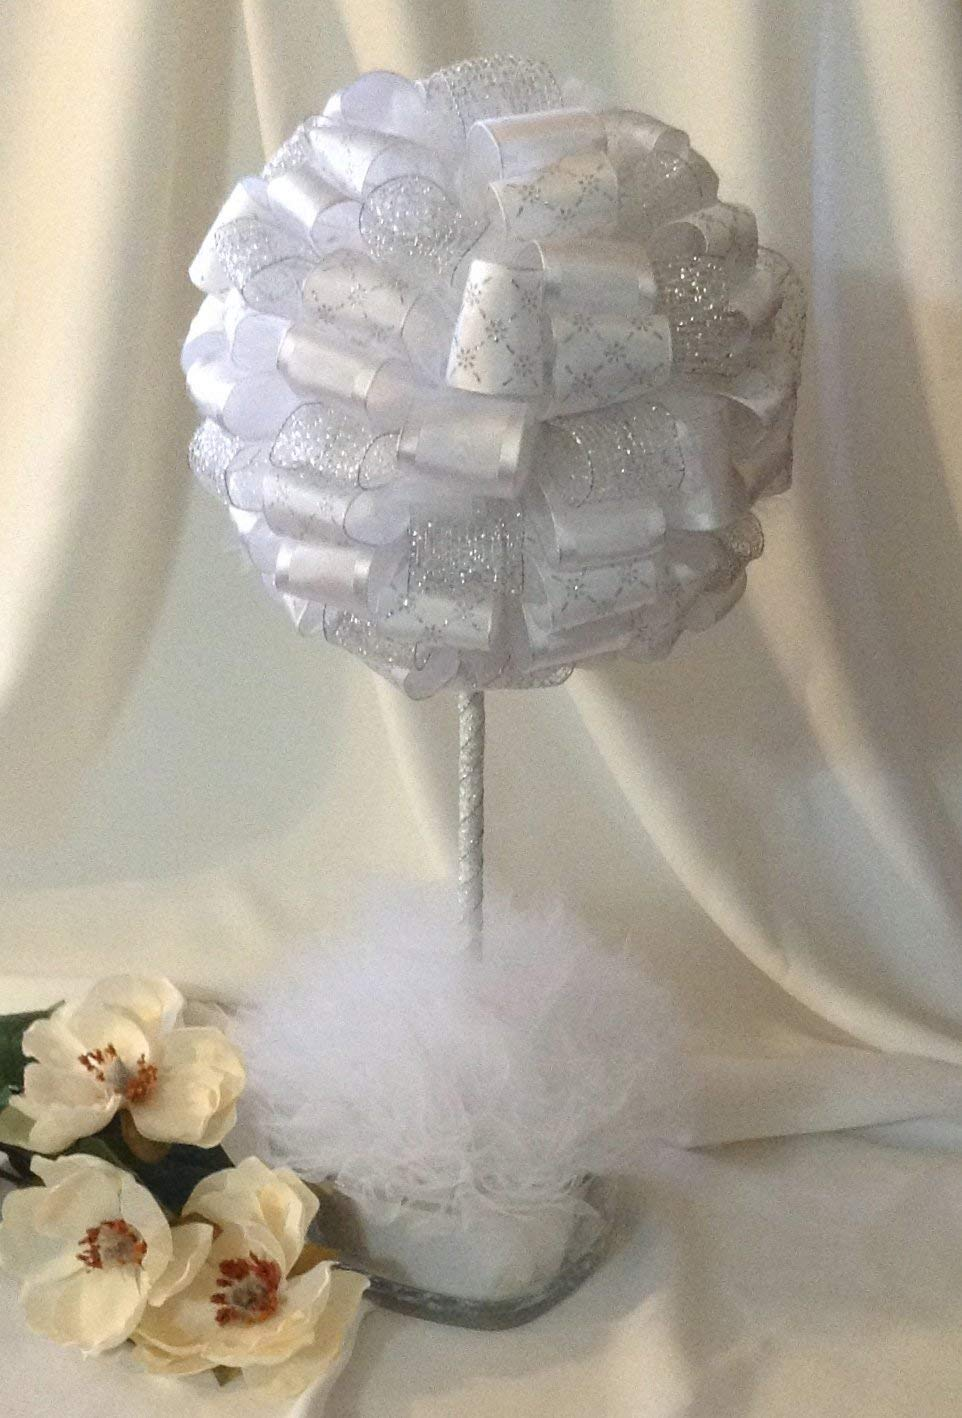 Cheap Wedding Topiary Centerpieces Find Wedding Topiary Centerpieces Deals On Line At Alibaba Com